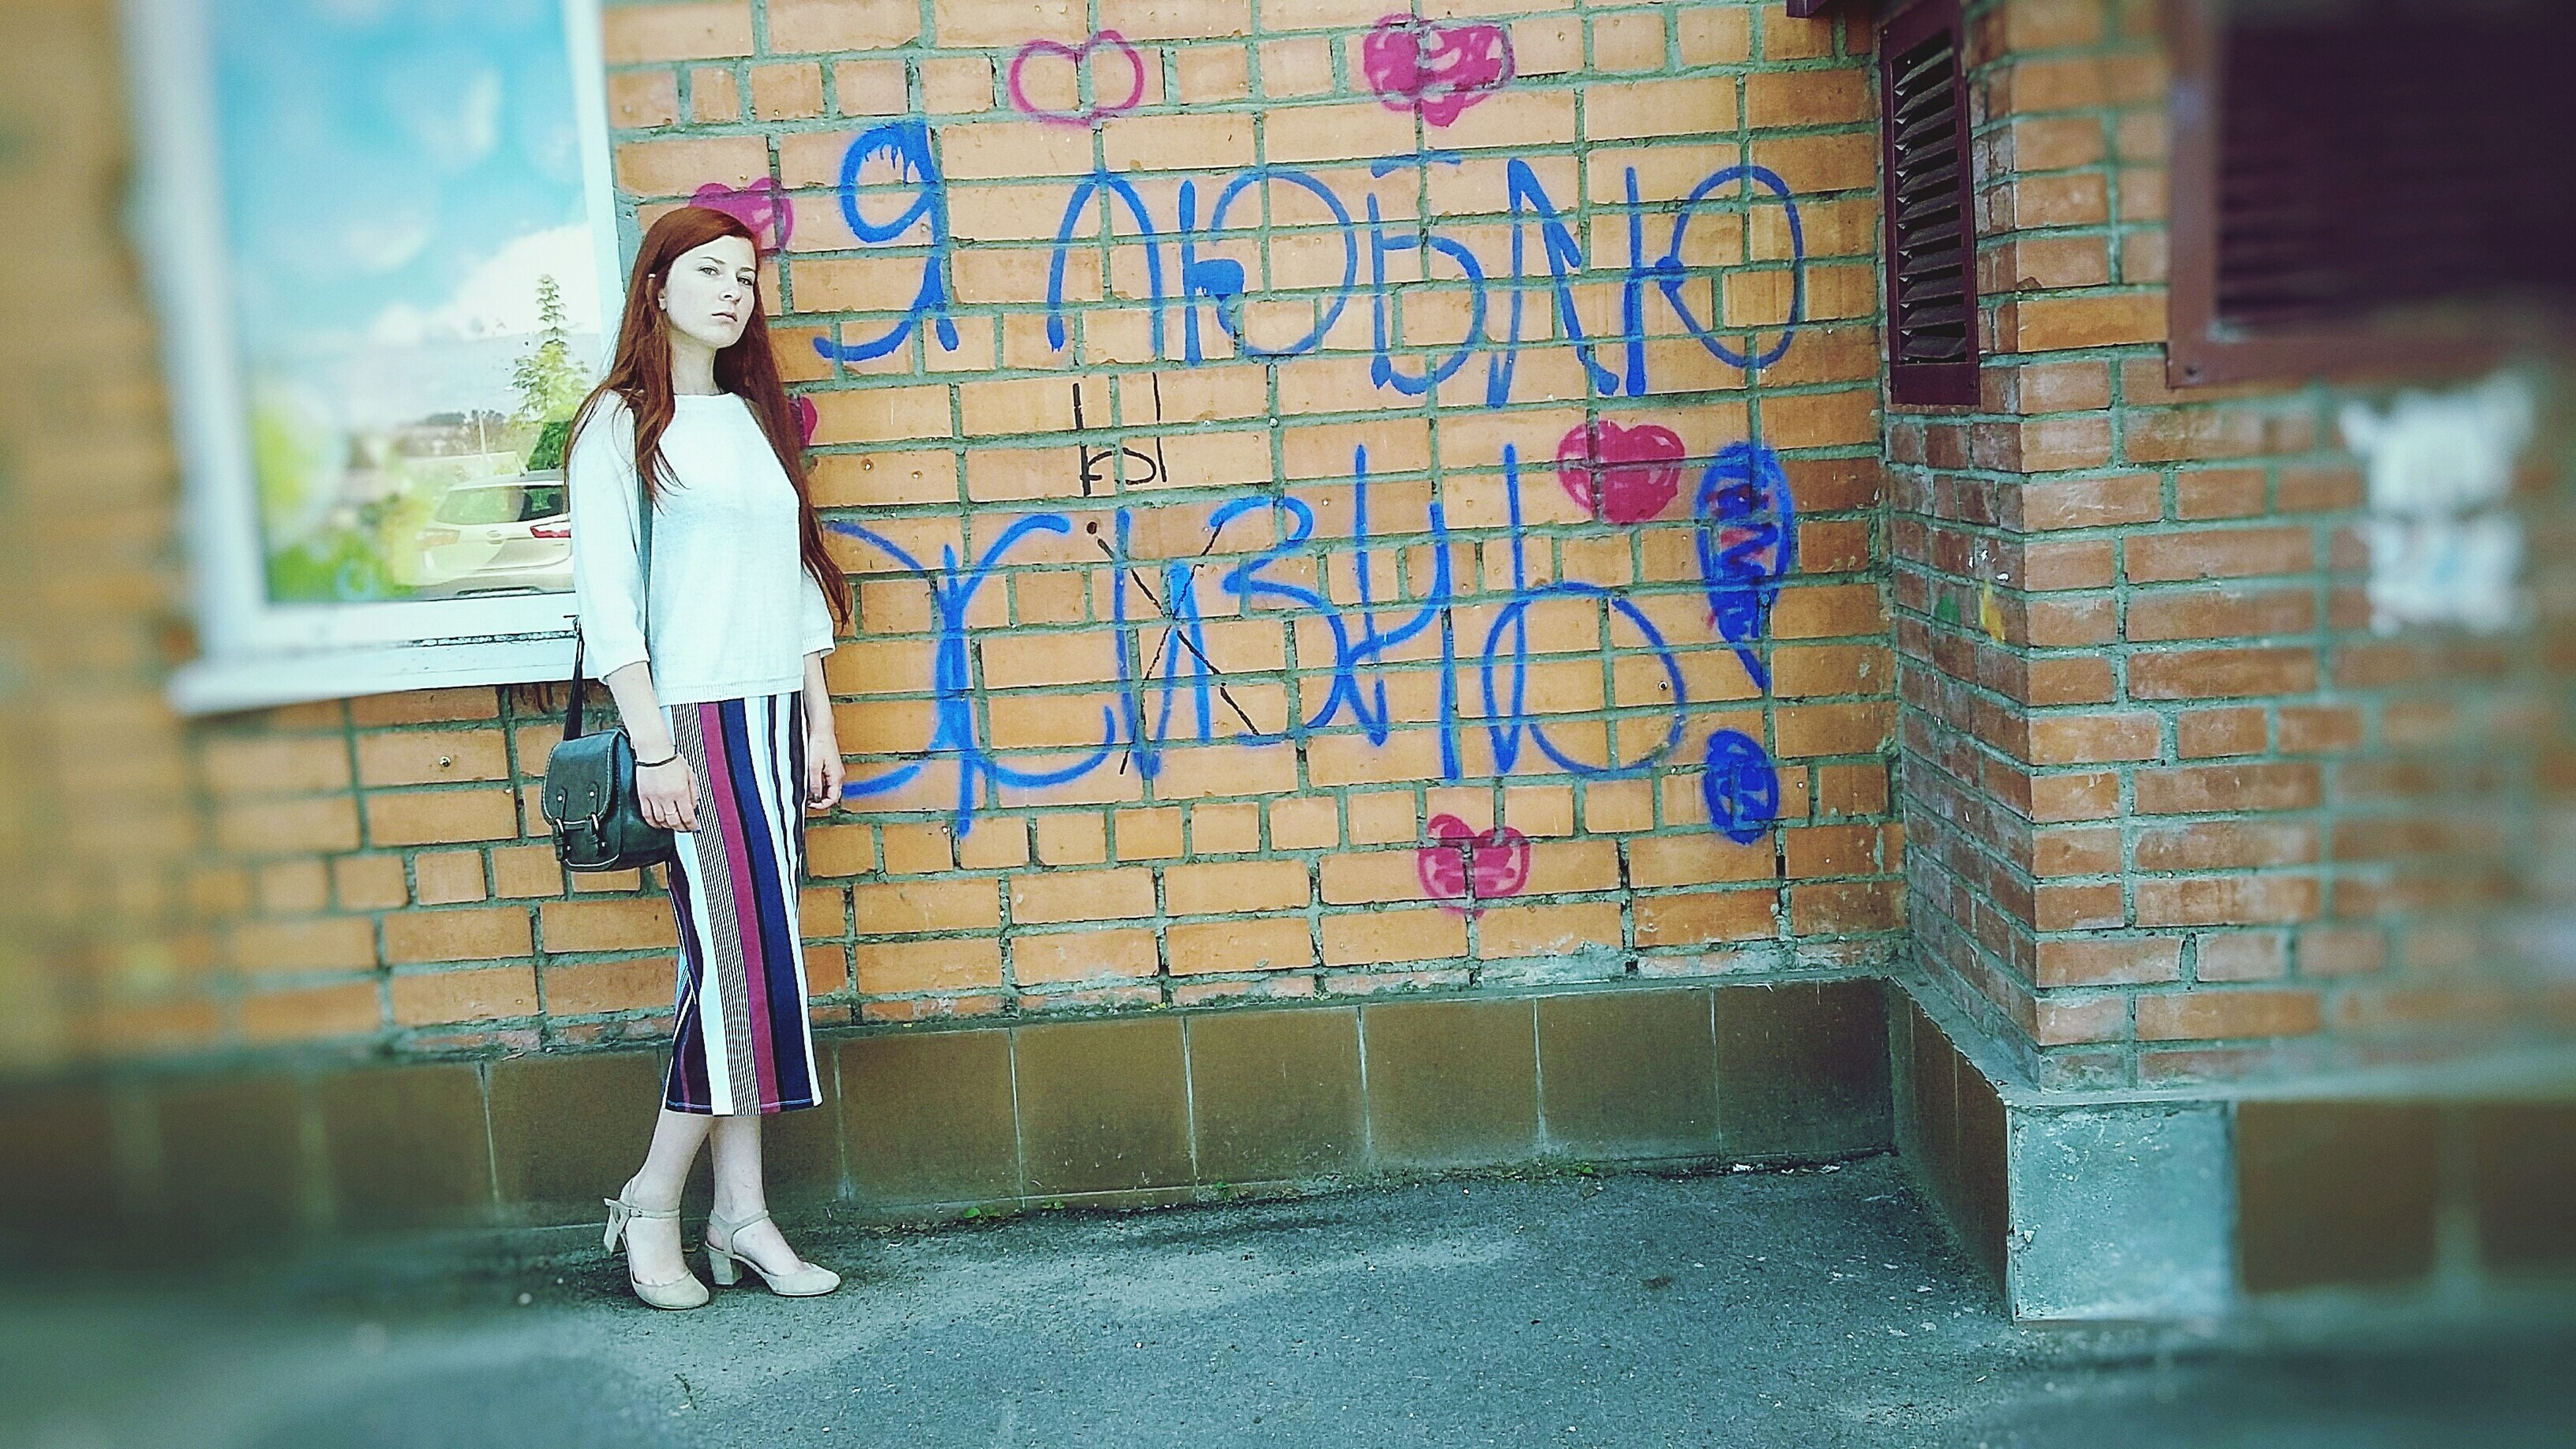 wall - building feature, graffiti, art, wall, lifestyles, casual clothing, painting, day, multi colored, blue